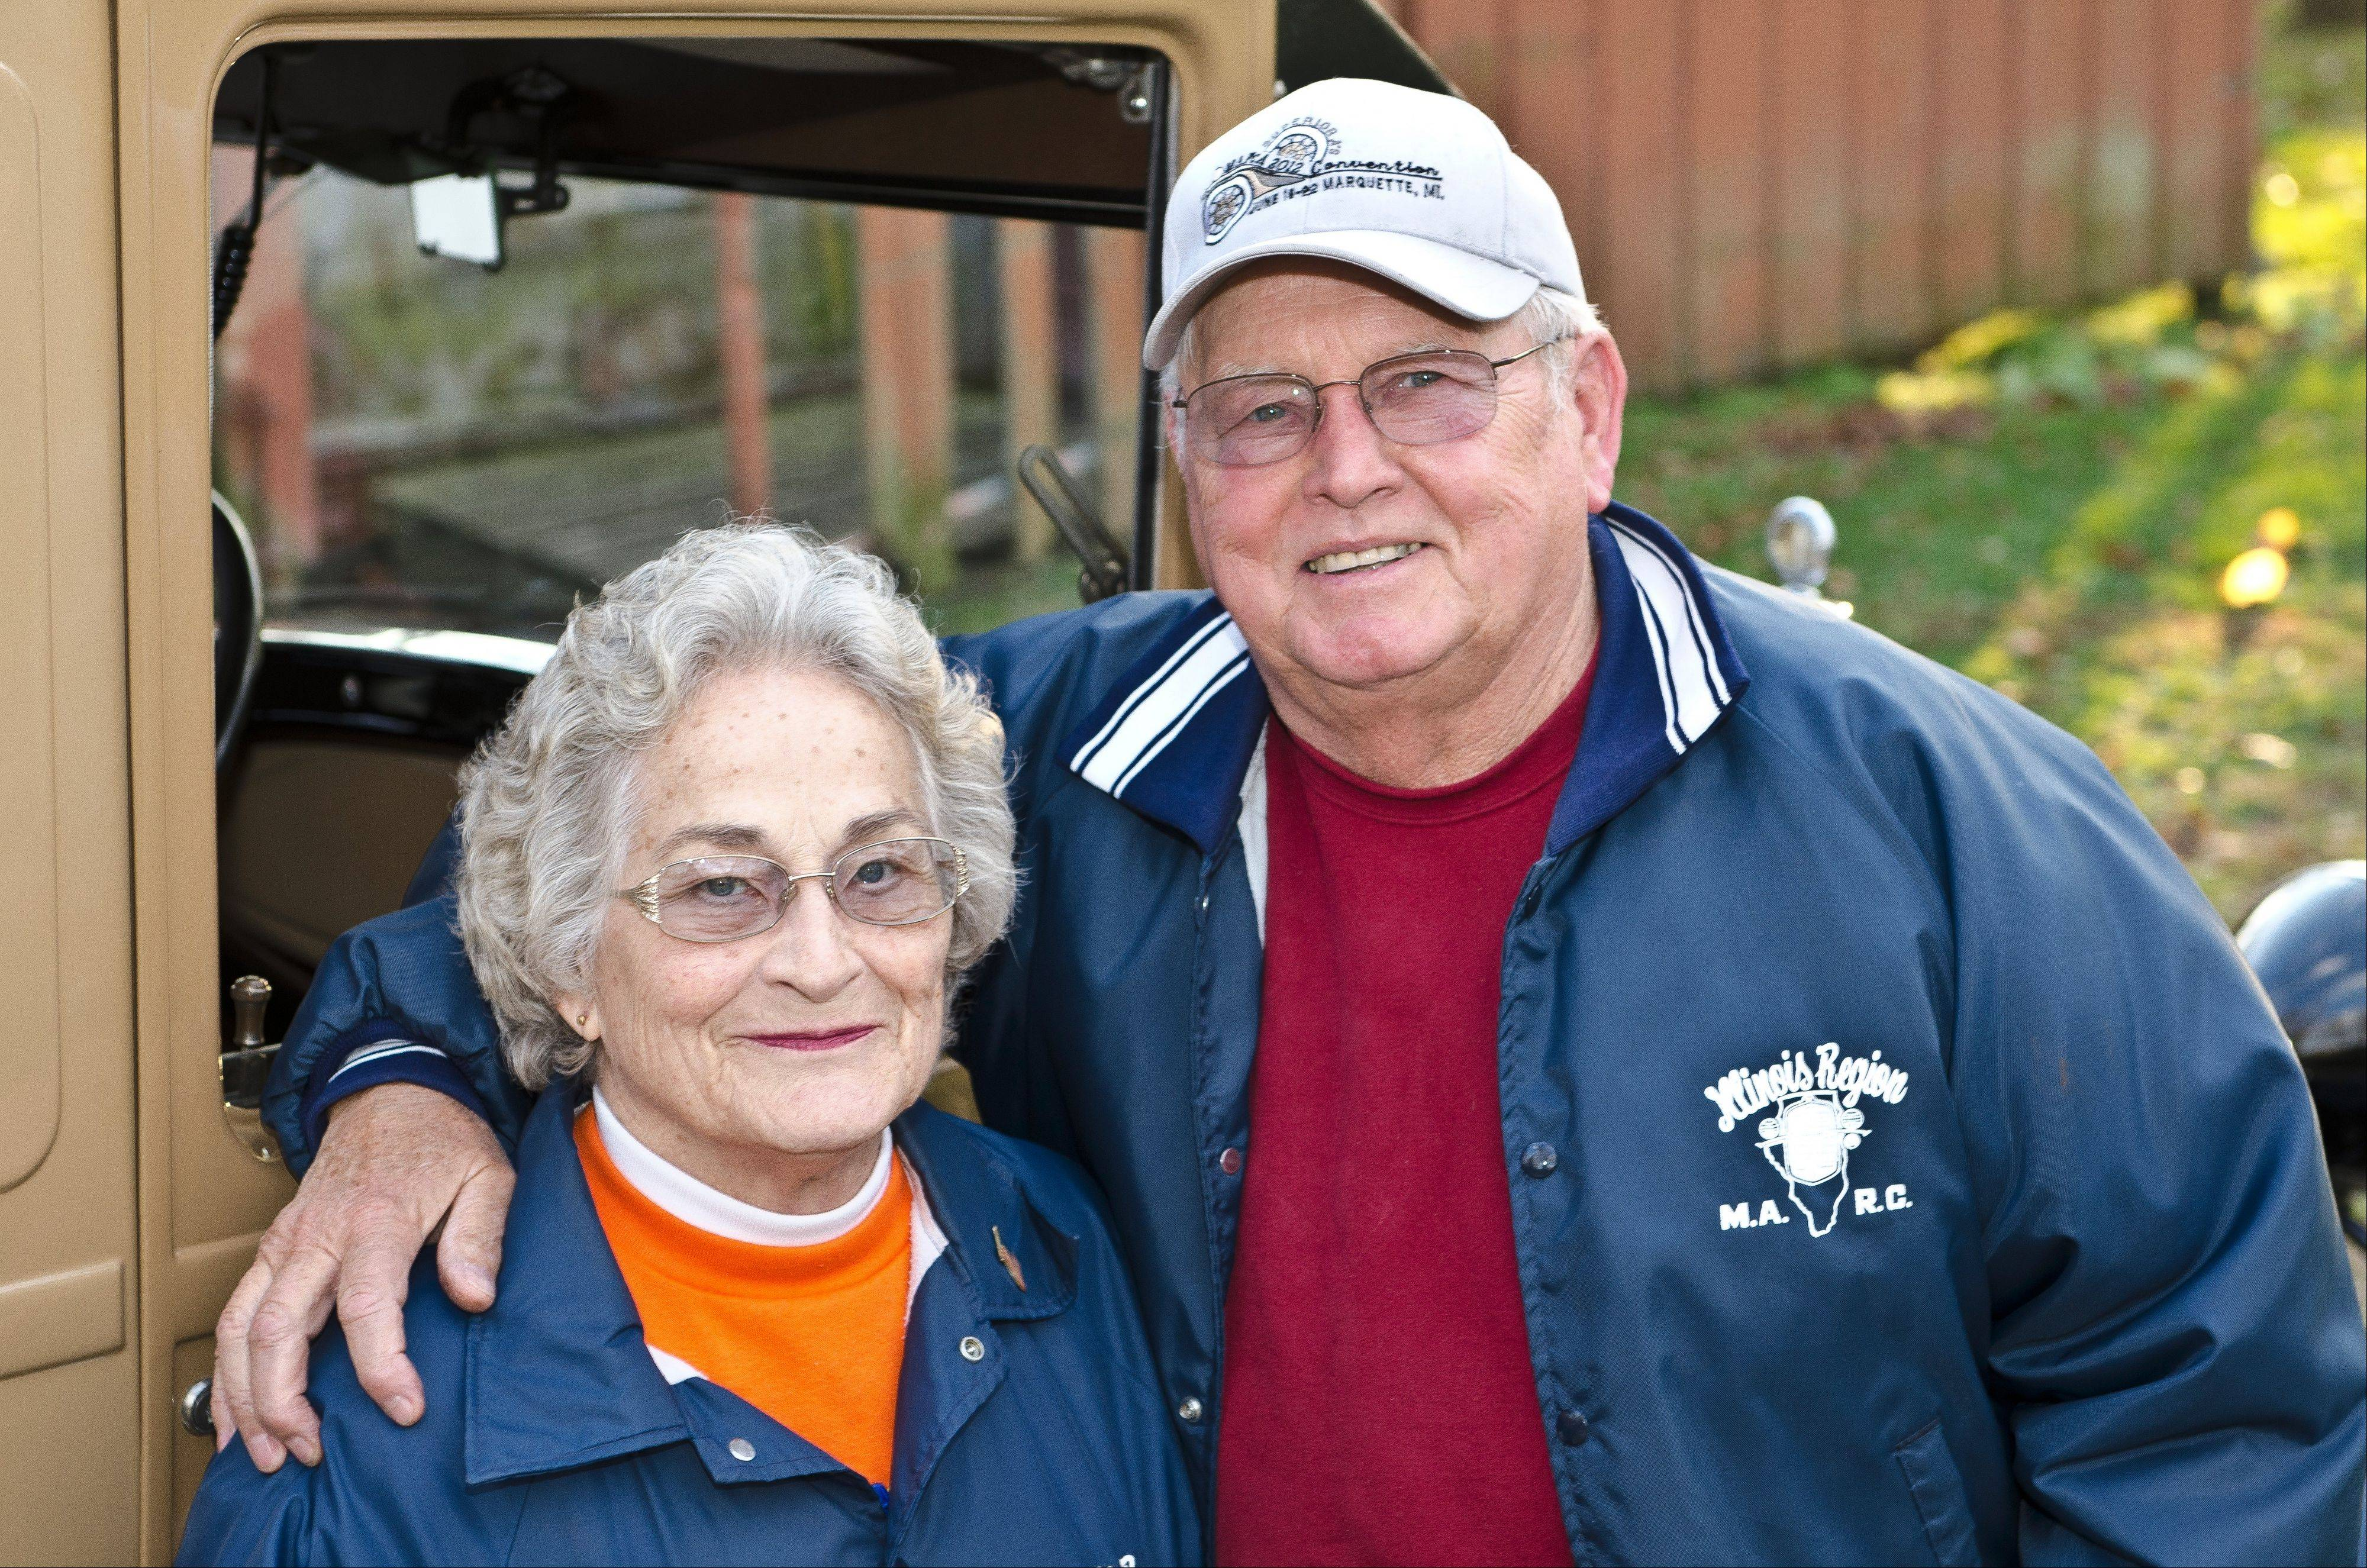 Mike and LaVerne Podgorski of Barrington say their grandchildren and great-grandchildren enjoy riding in the Model A's.